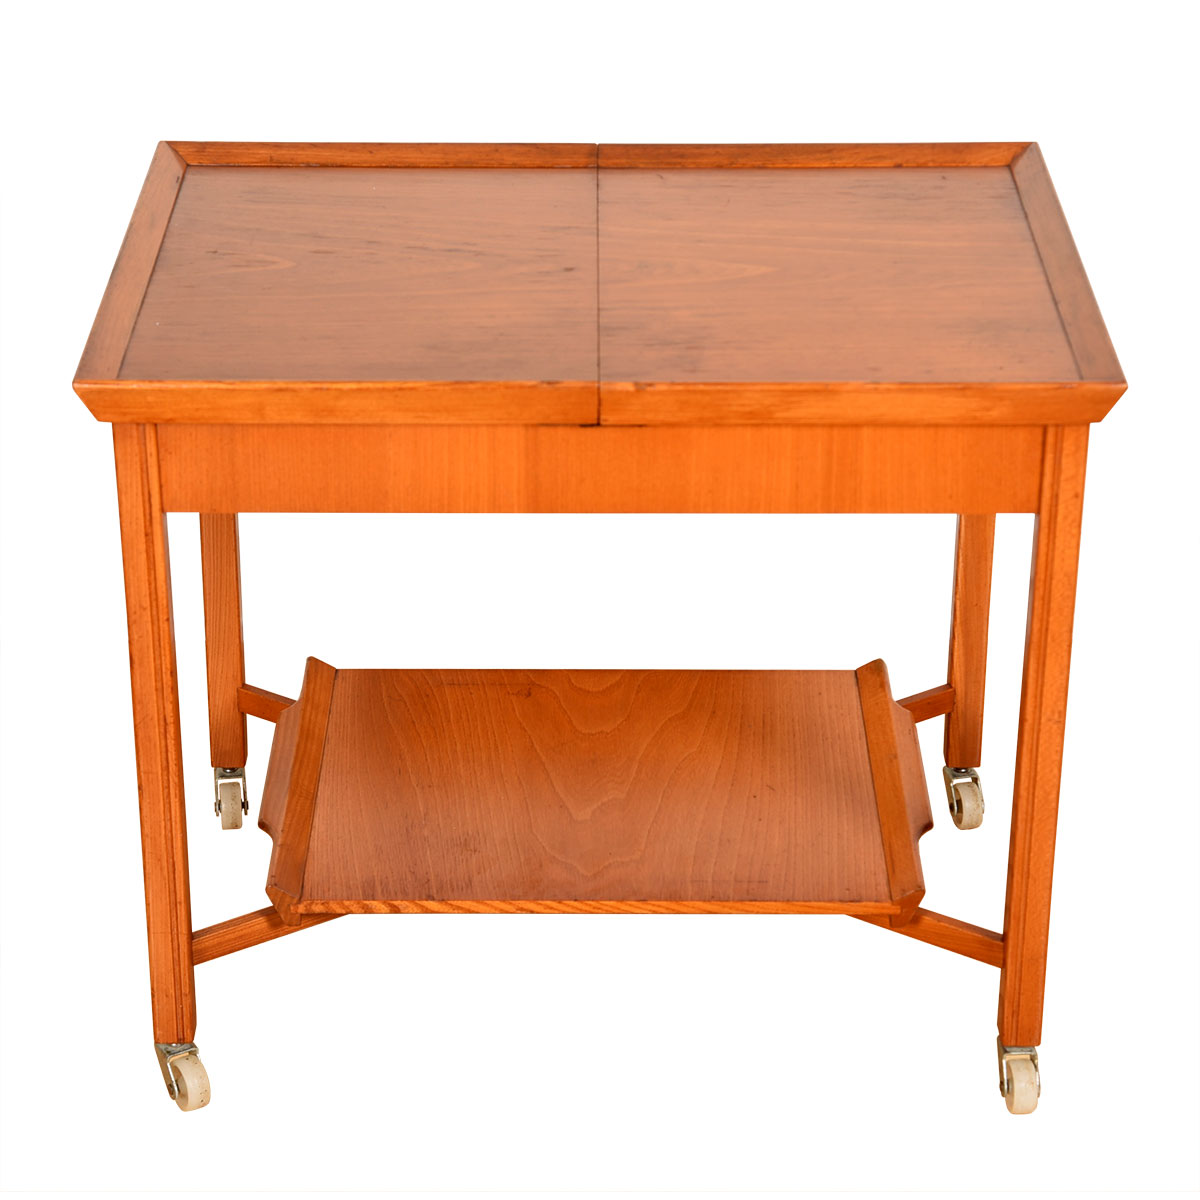 A Swedish Sliding-Top Sewing   Expanding Project Cart